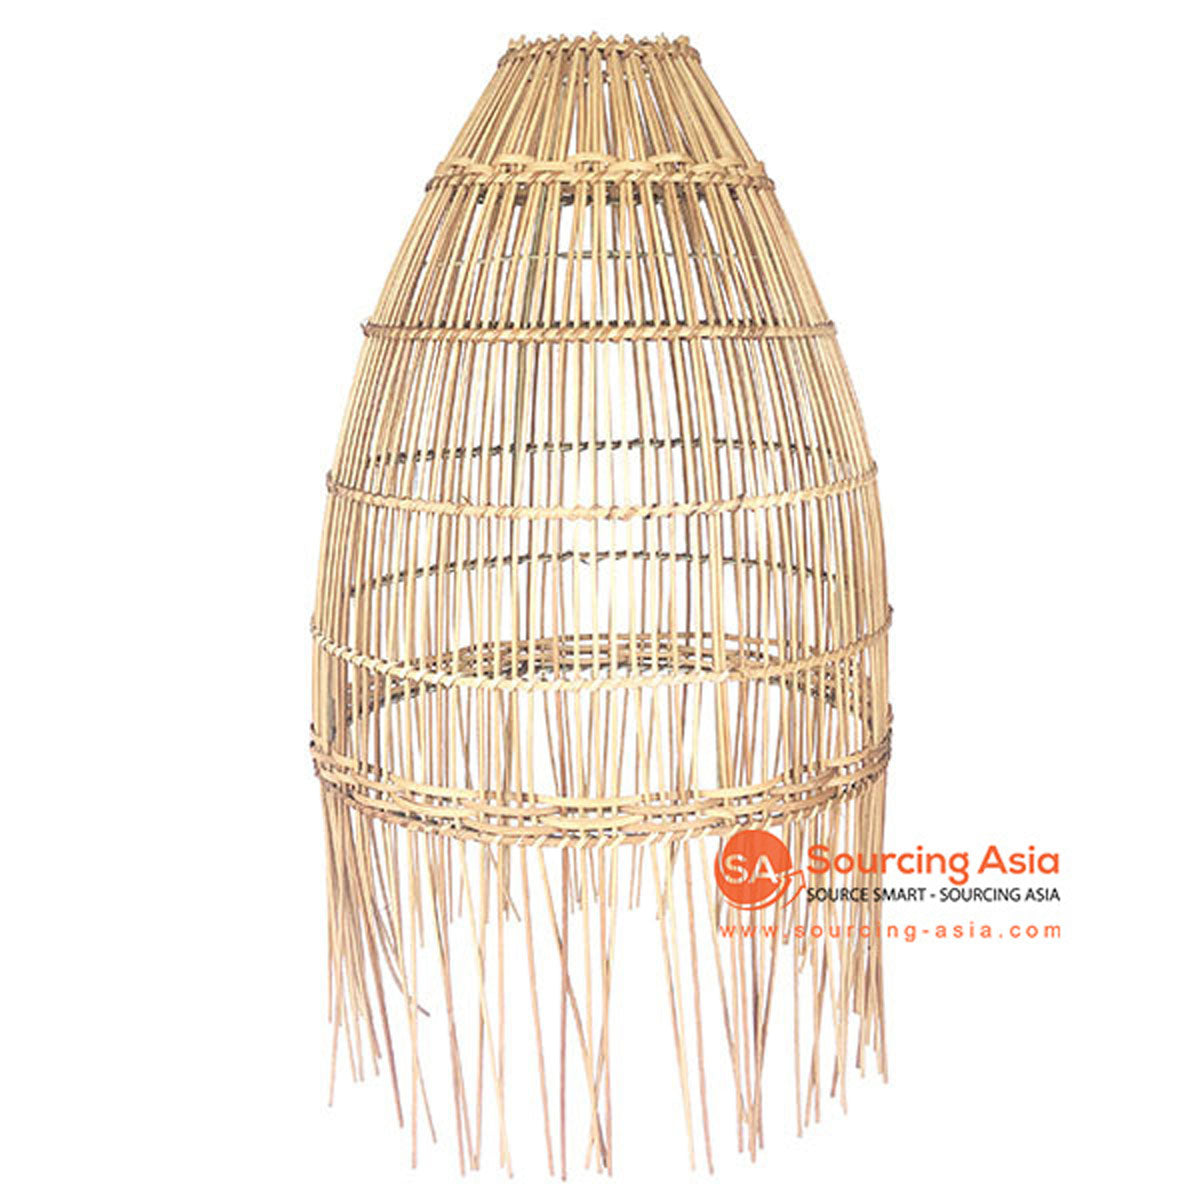 SHL064-2 NATURAL RATTAN PENDANT LAMP